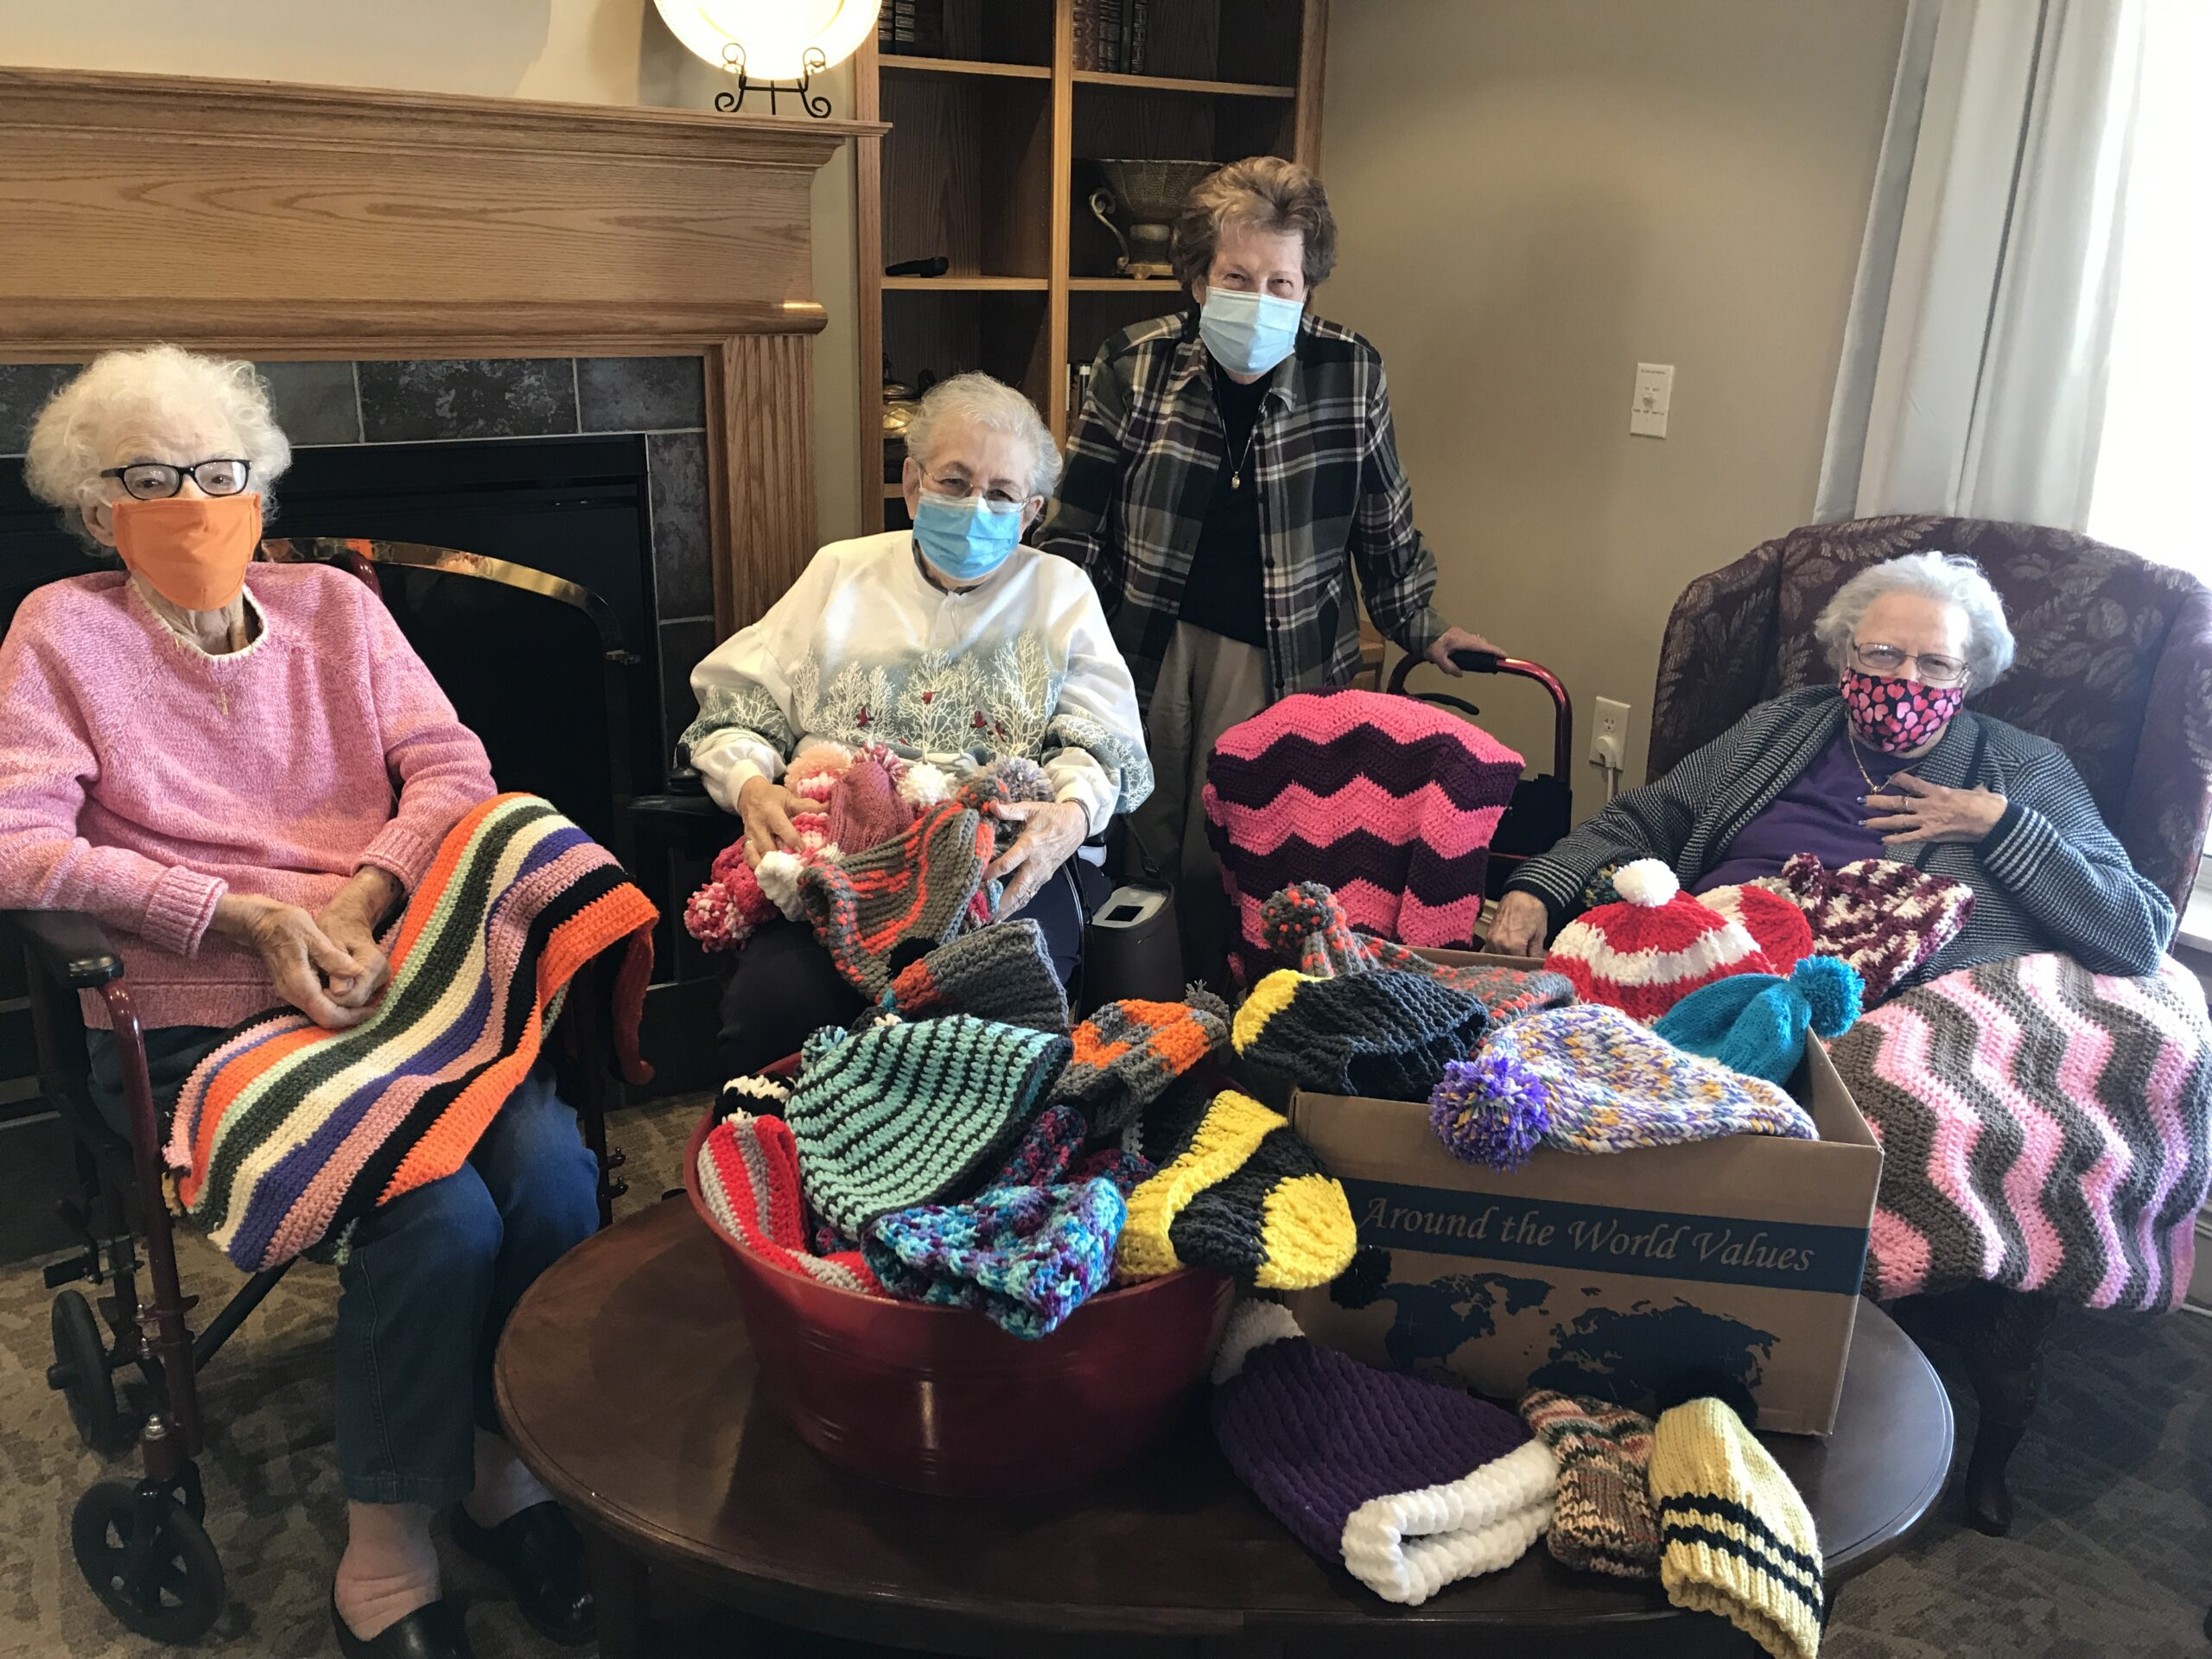 Part of the Busy Bees group of ladies that donated their hard work making these beautiful hats and afghans for our Random Acts of Kindness day